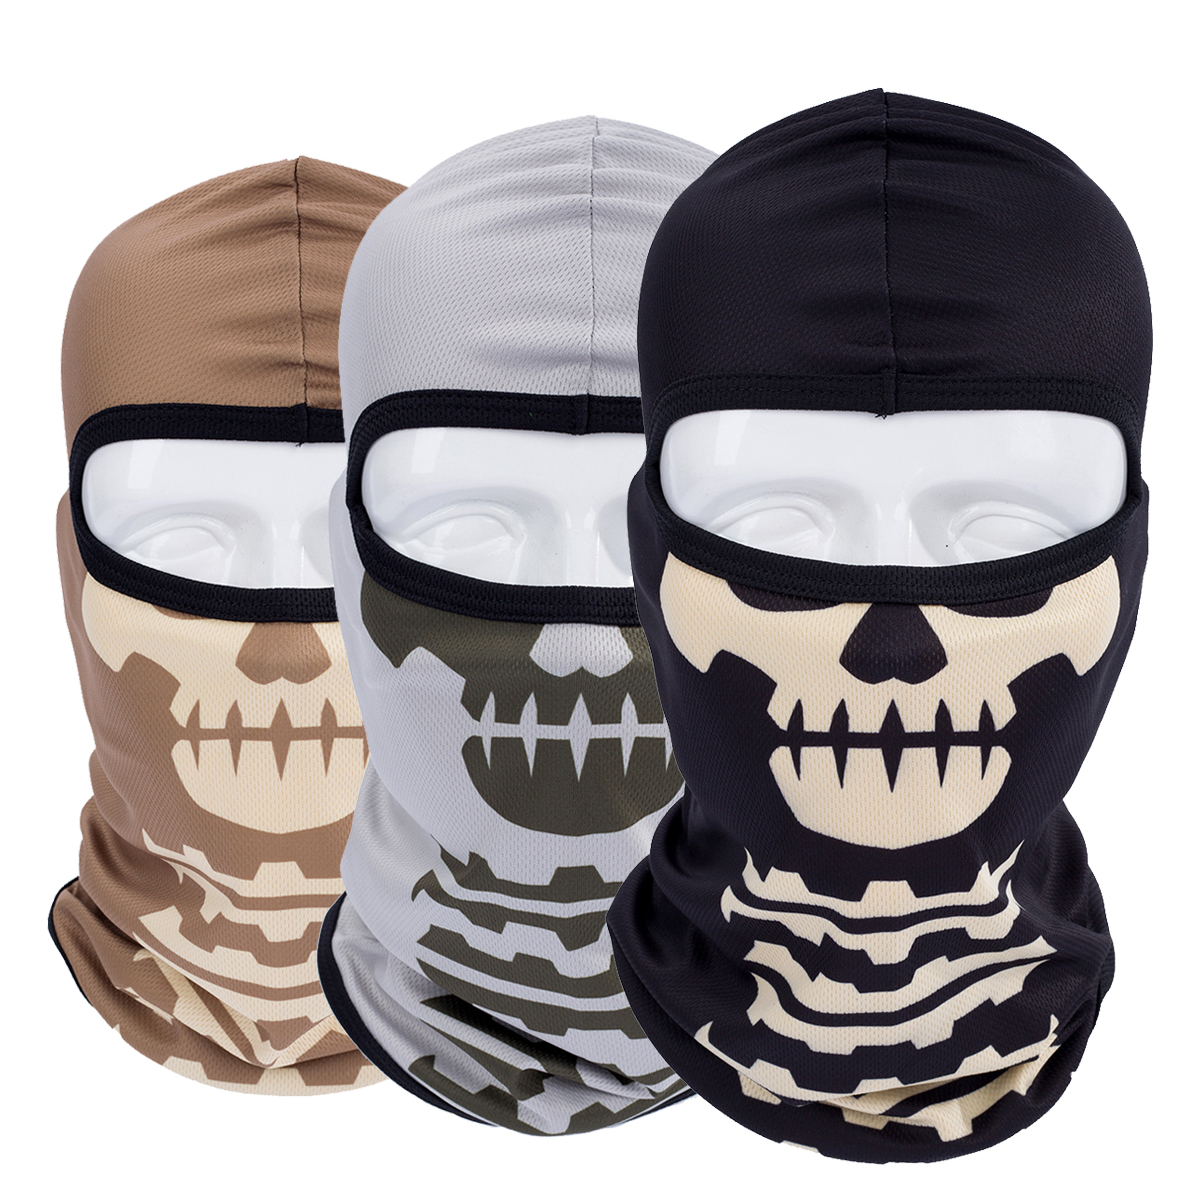 Compare Prices on Ghost Tactical Mask- Online Shopping/Buy Low ...